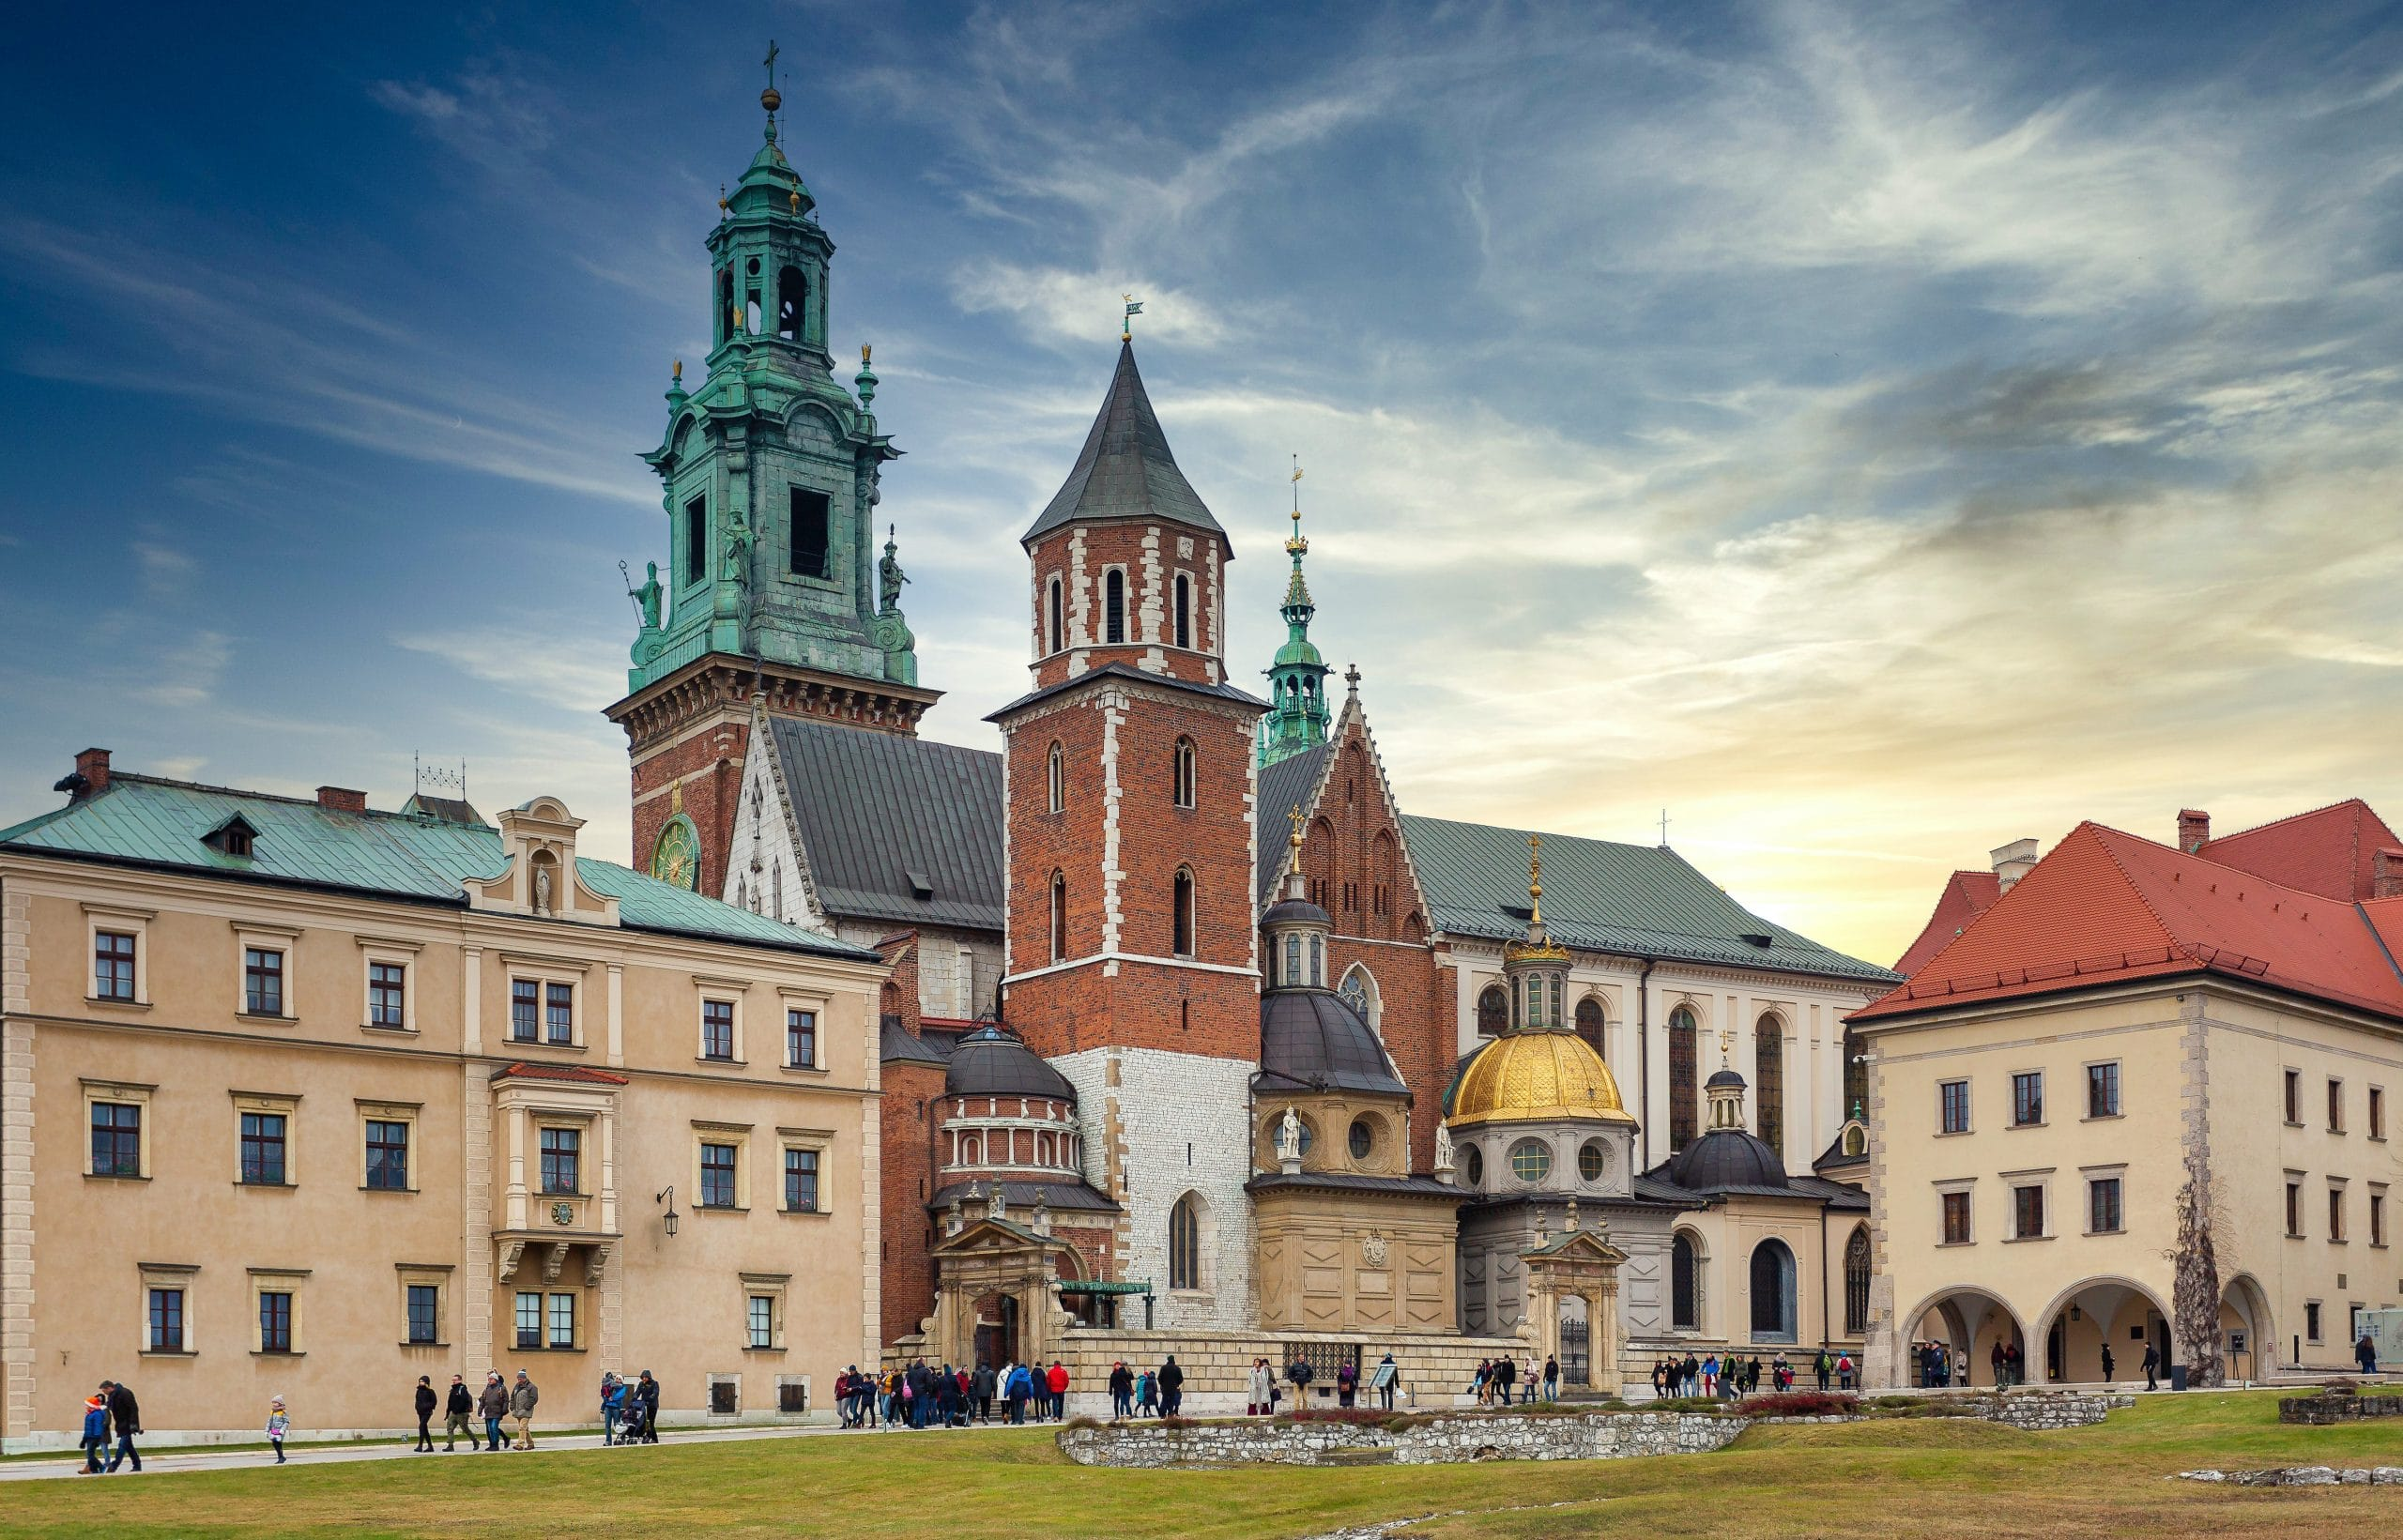 working from home? try Krakow